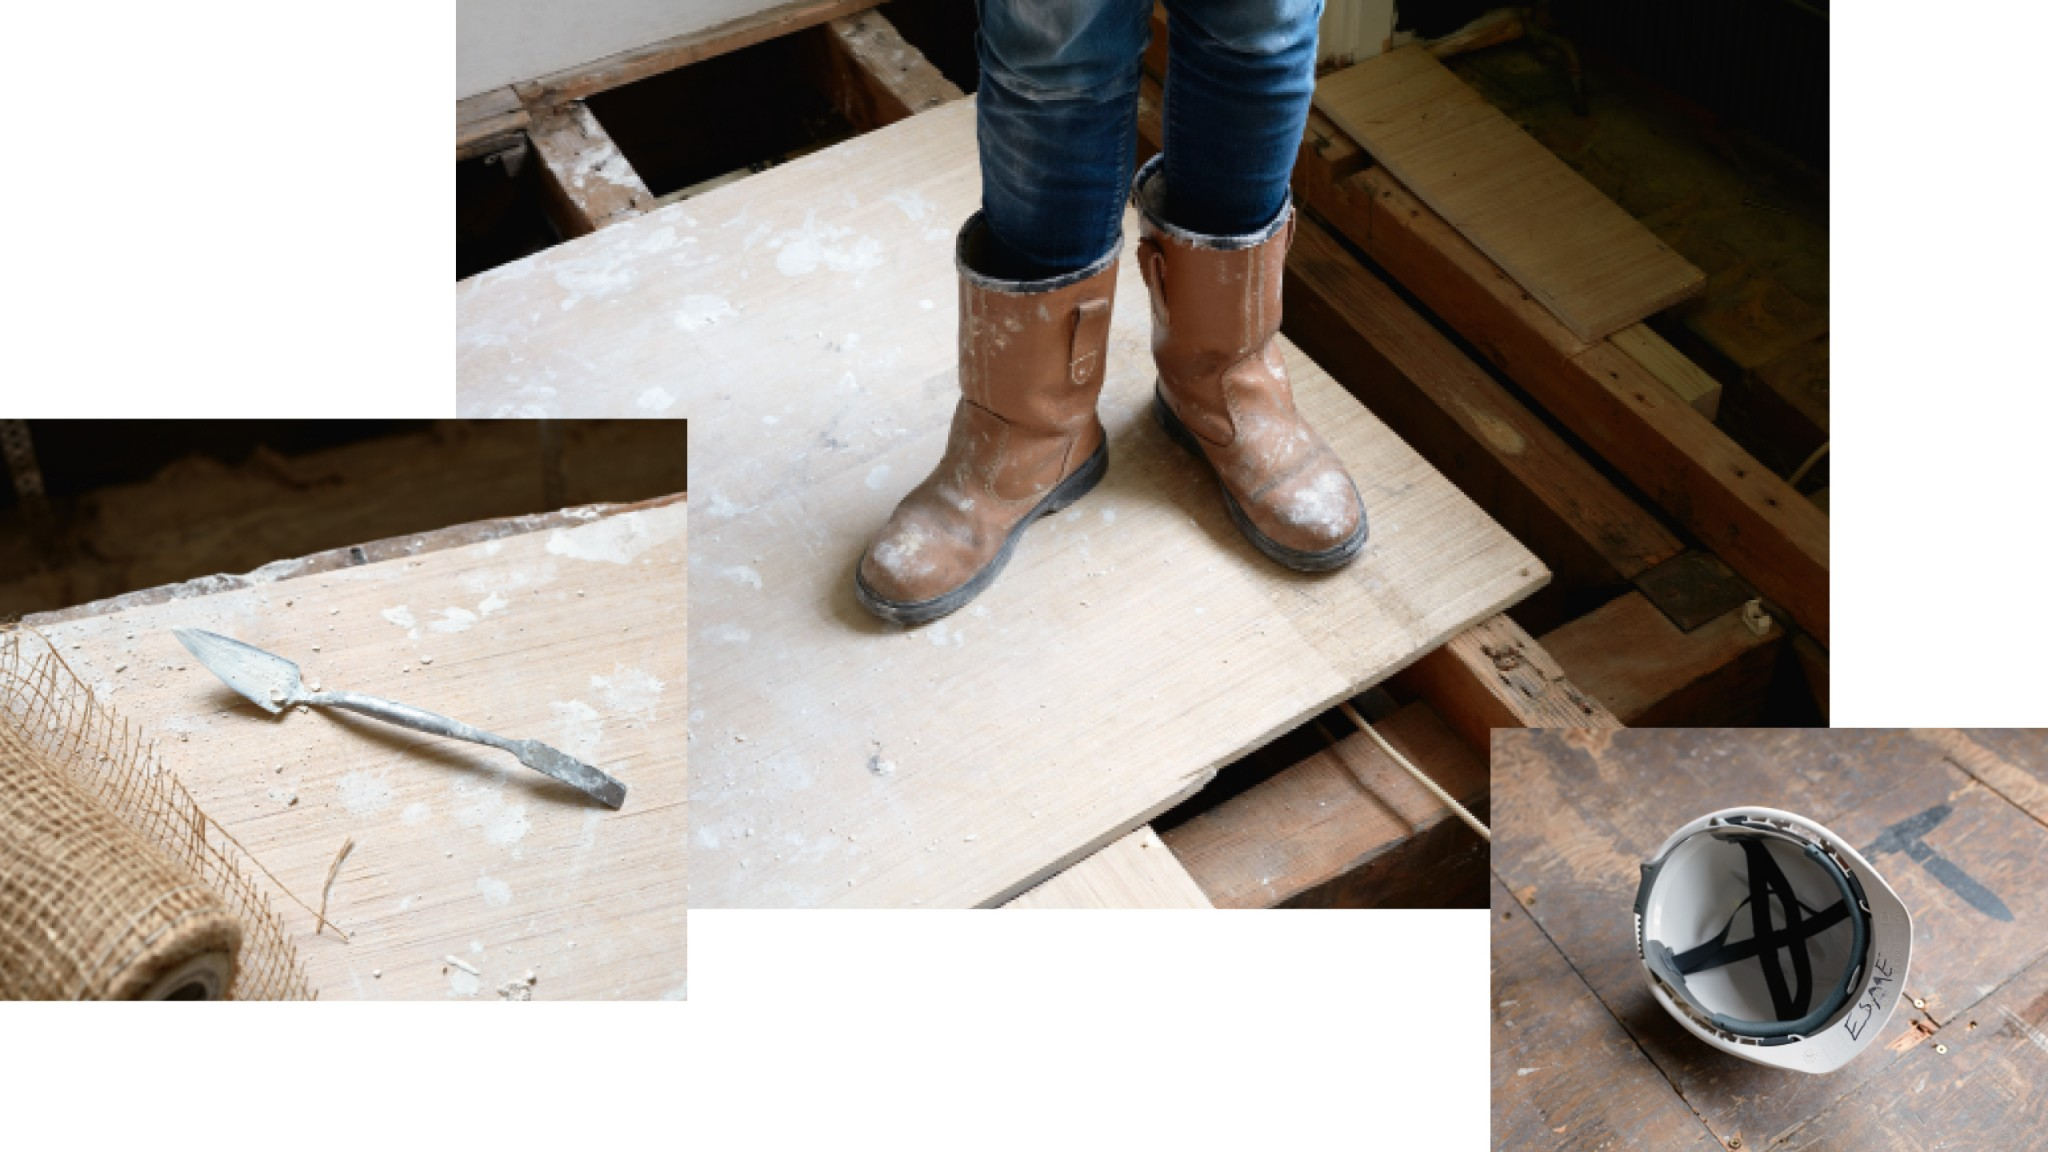 Three images of tools, closeup of boots and a hard hat